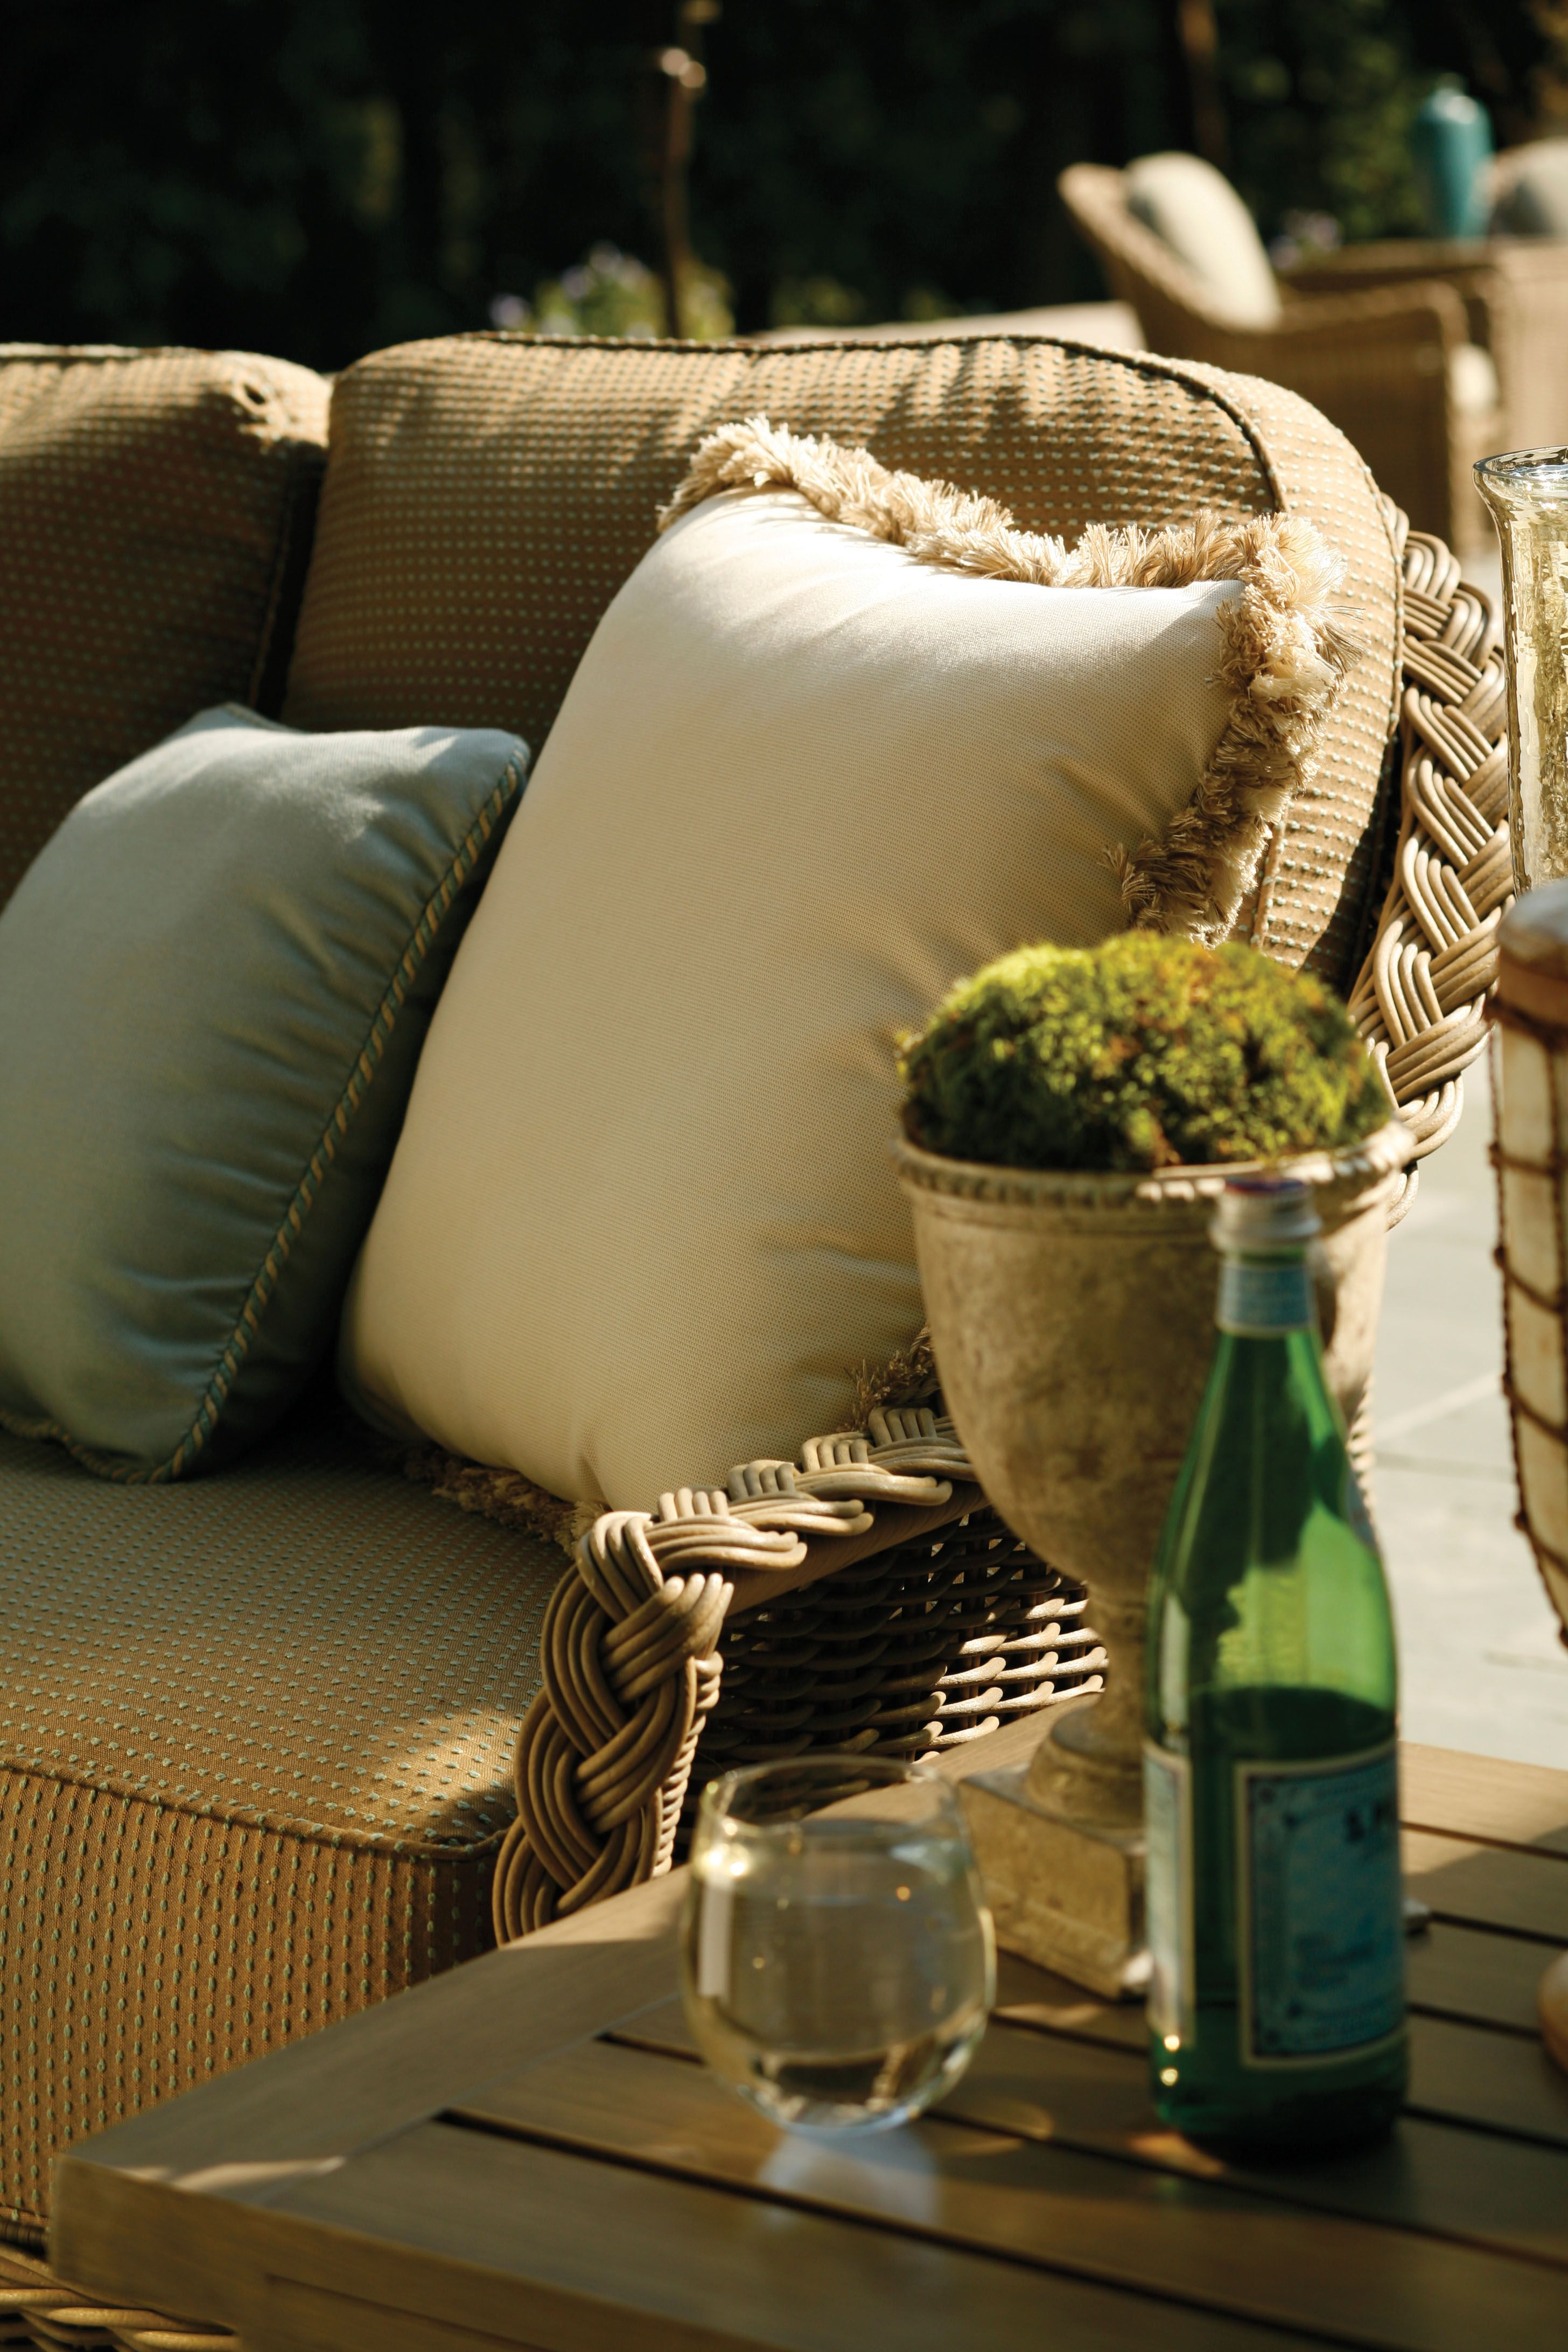 The Summer Classics Sedona collection features a hand ... on Fine Living Patio Set id=40658